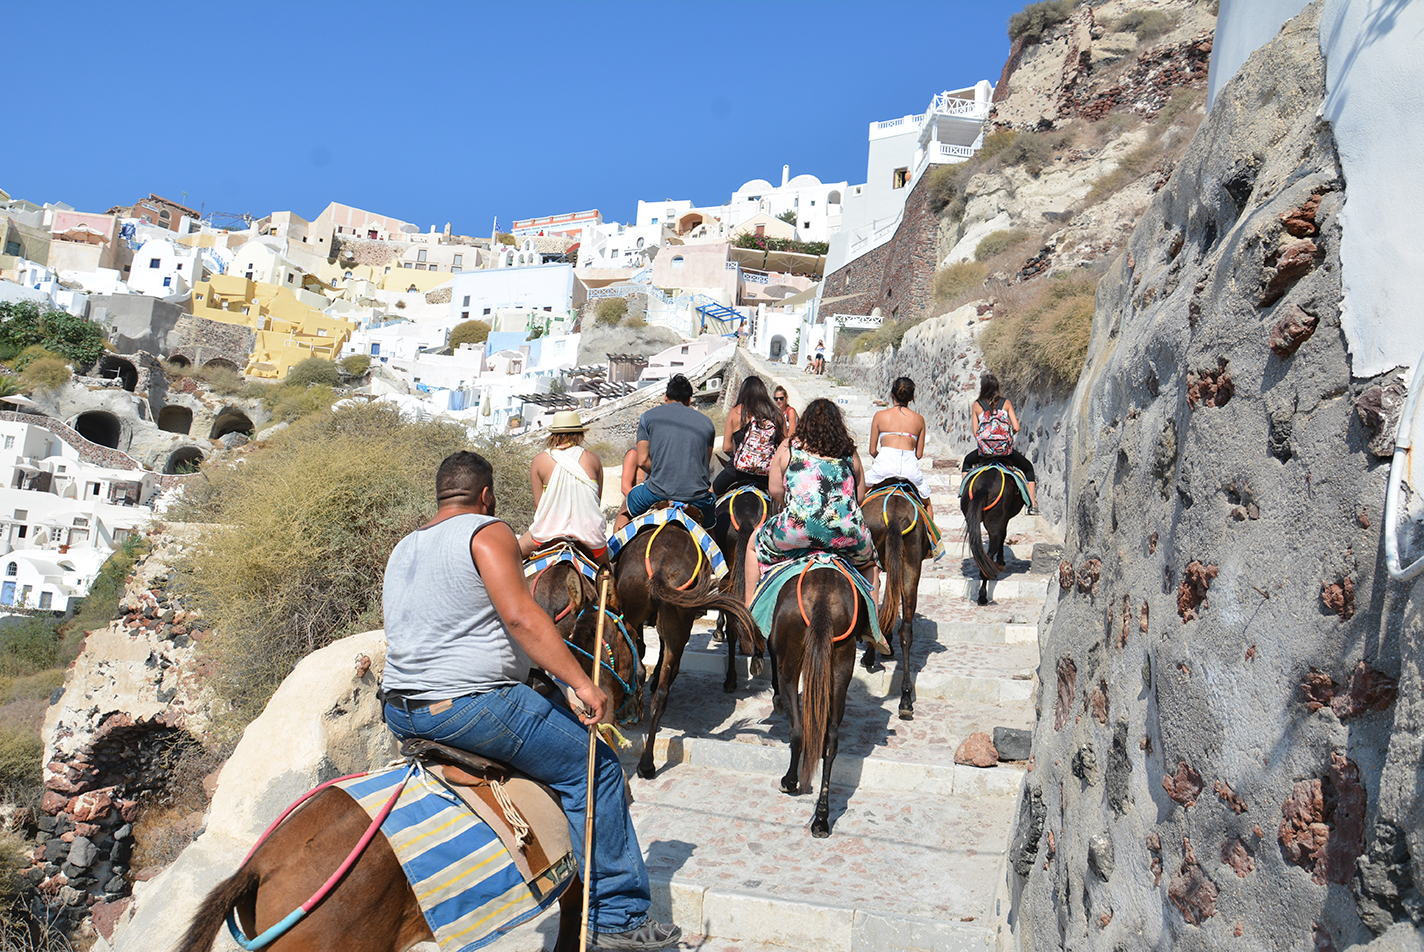 Banned: Overweight Tourists to Santorini | The Seat in the ...